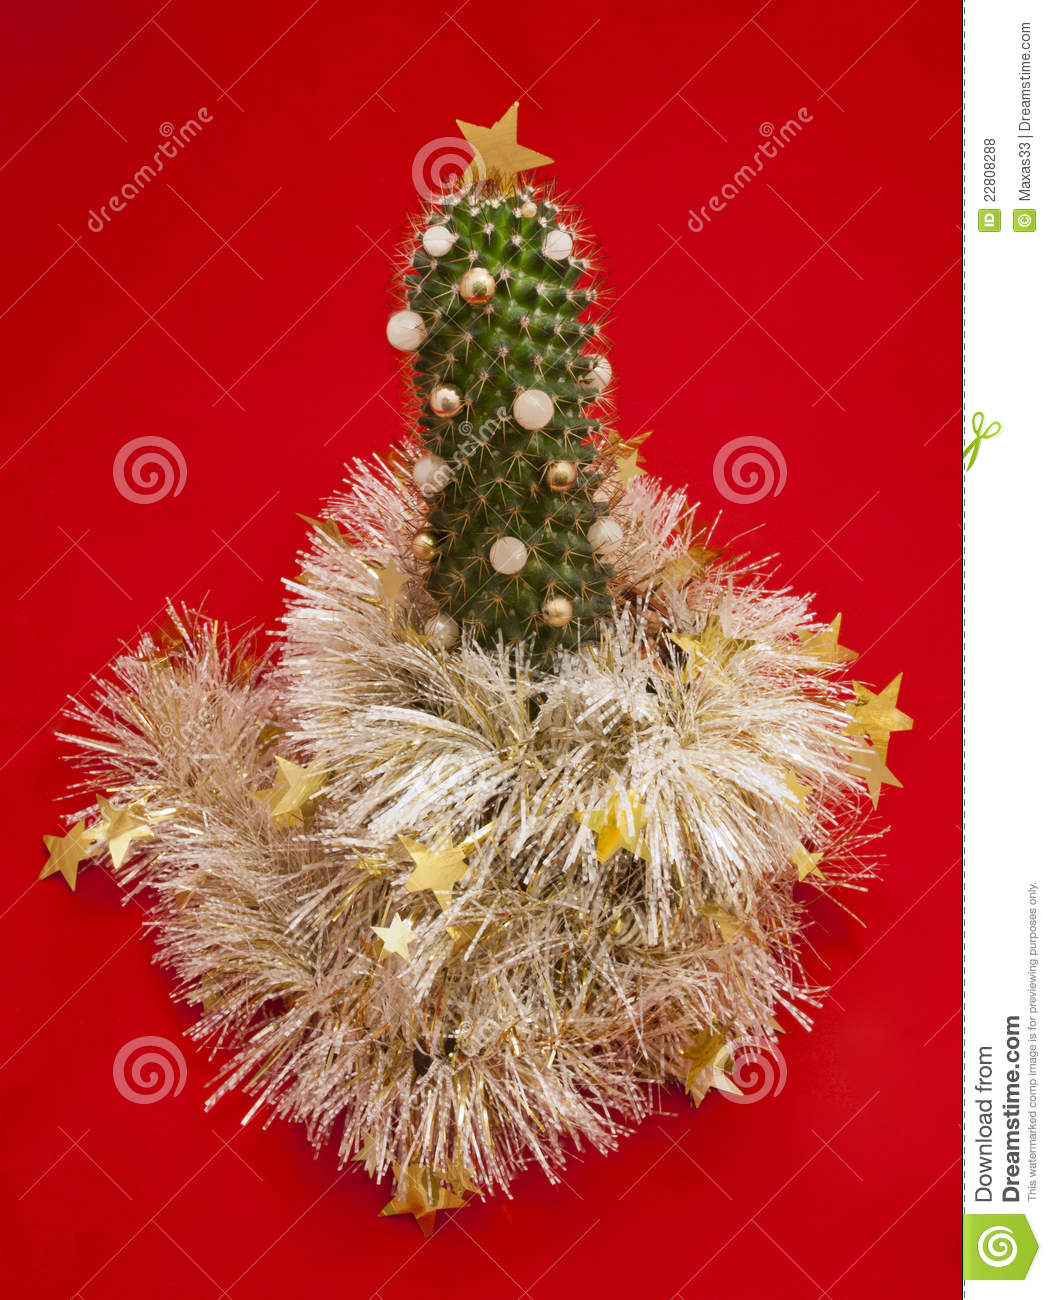 Cactus Decorated For Christmas: The Decorated Cactus. Royalty Free Stock